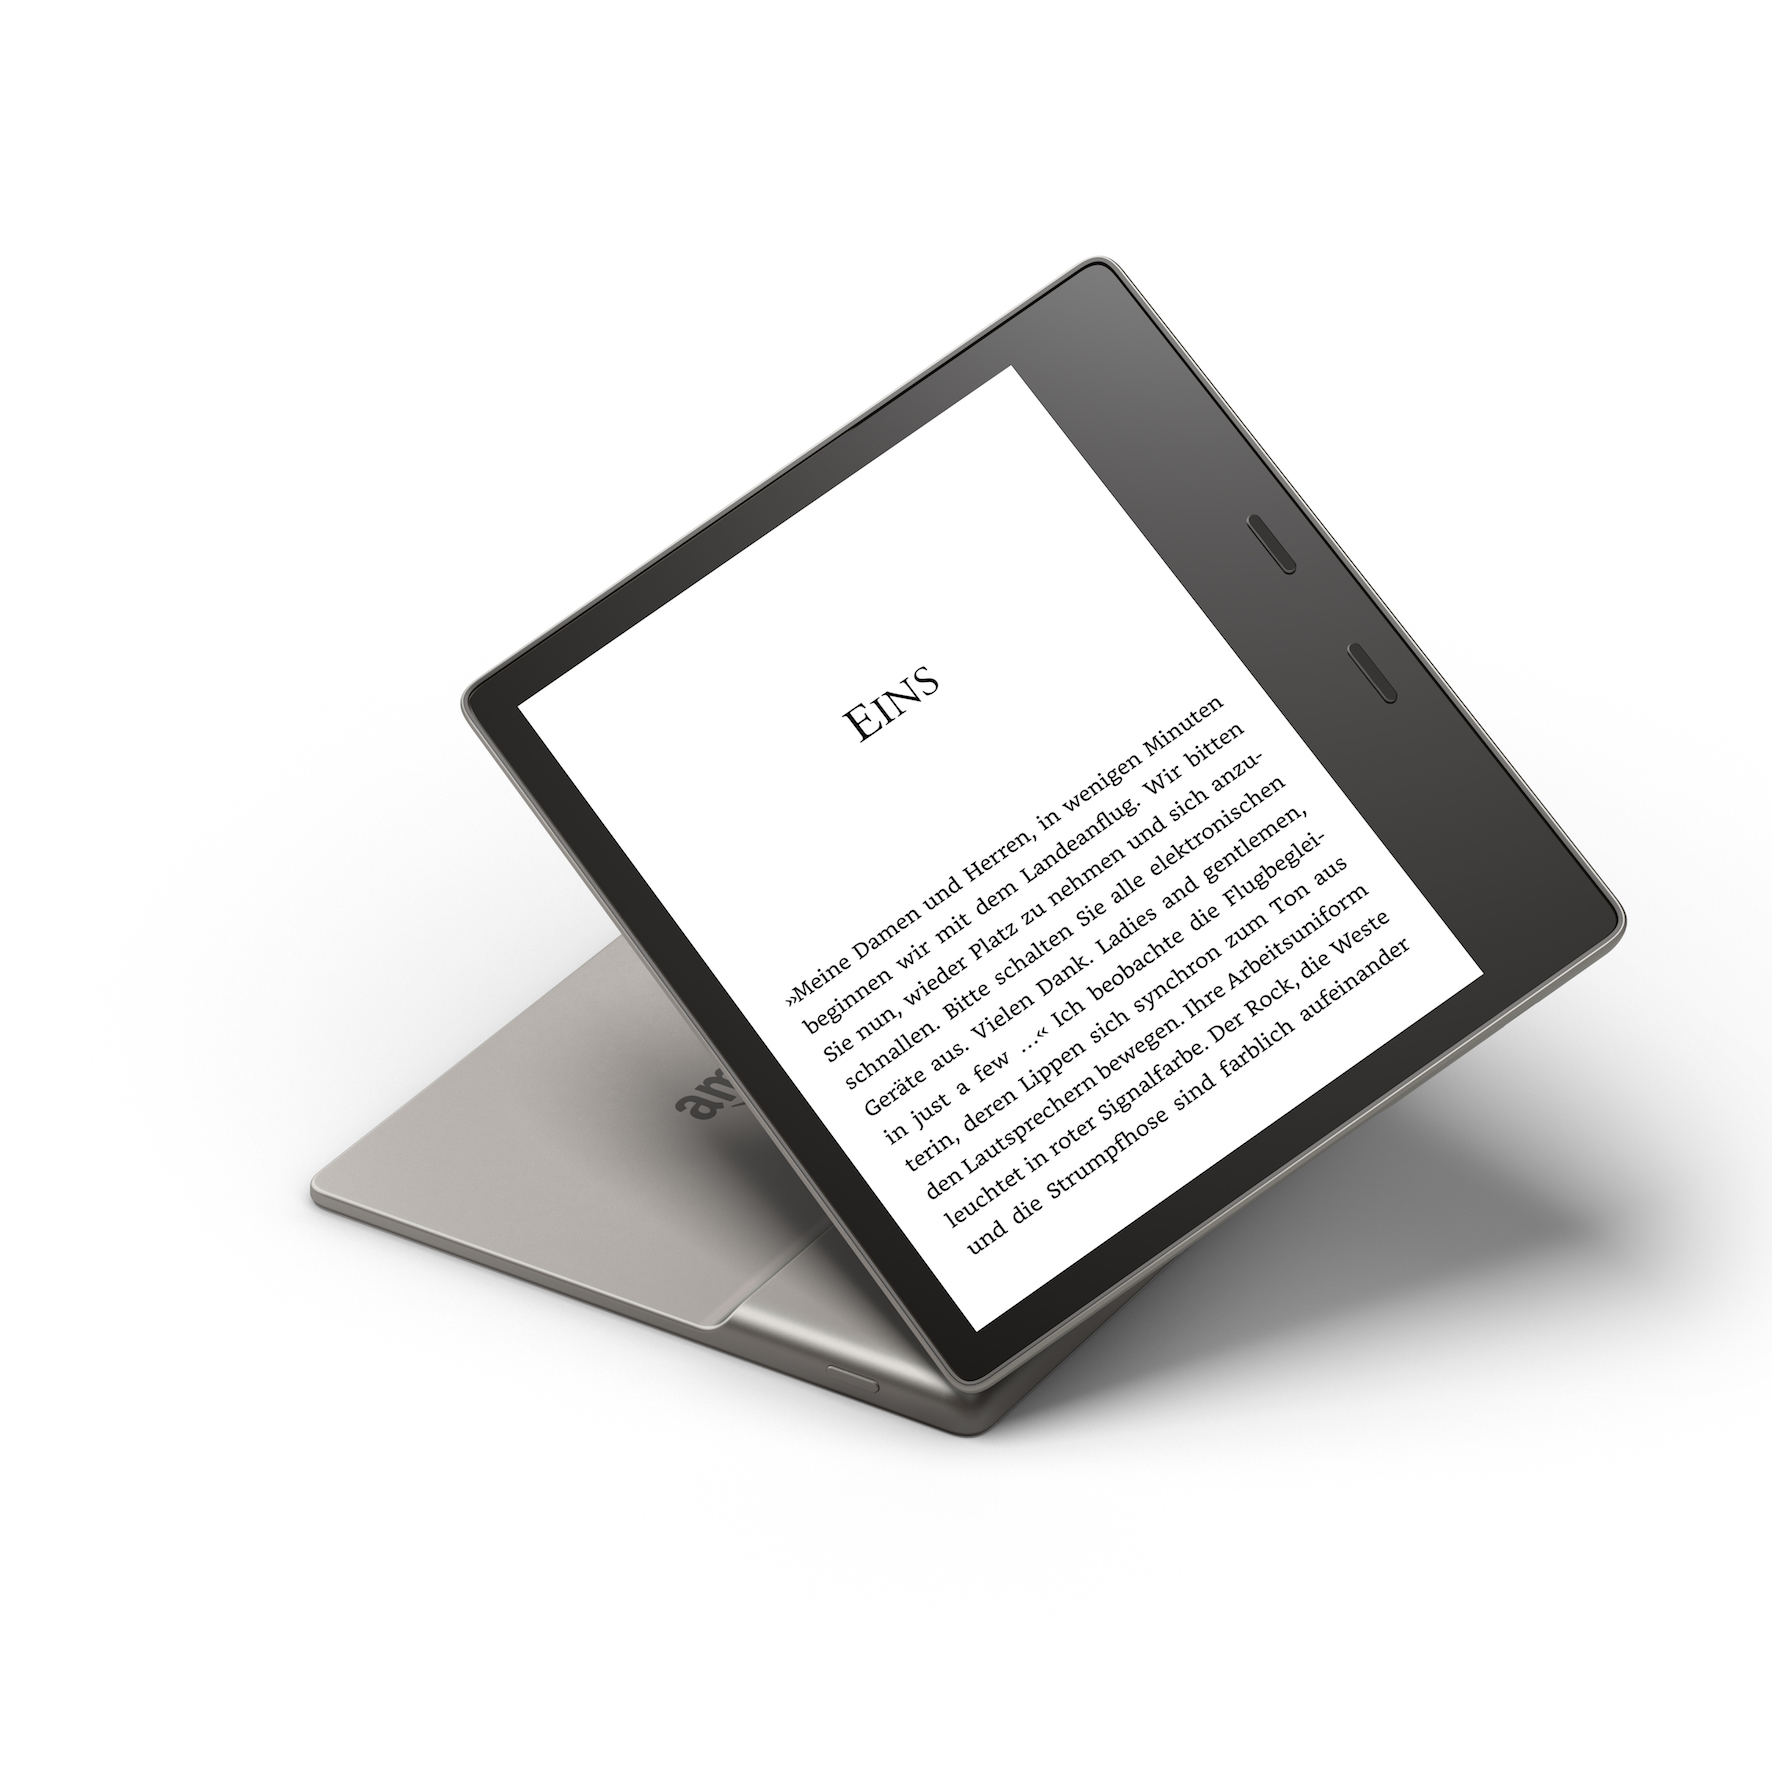 Amazon Kindle Oasis mit 7-Zoll-Display und 300 ppi